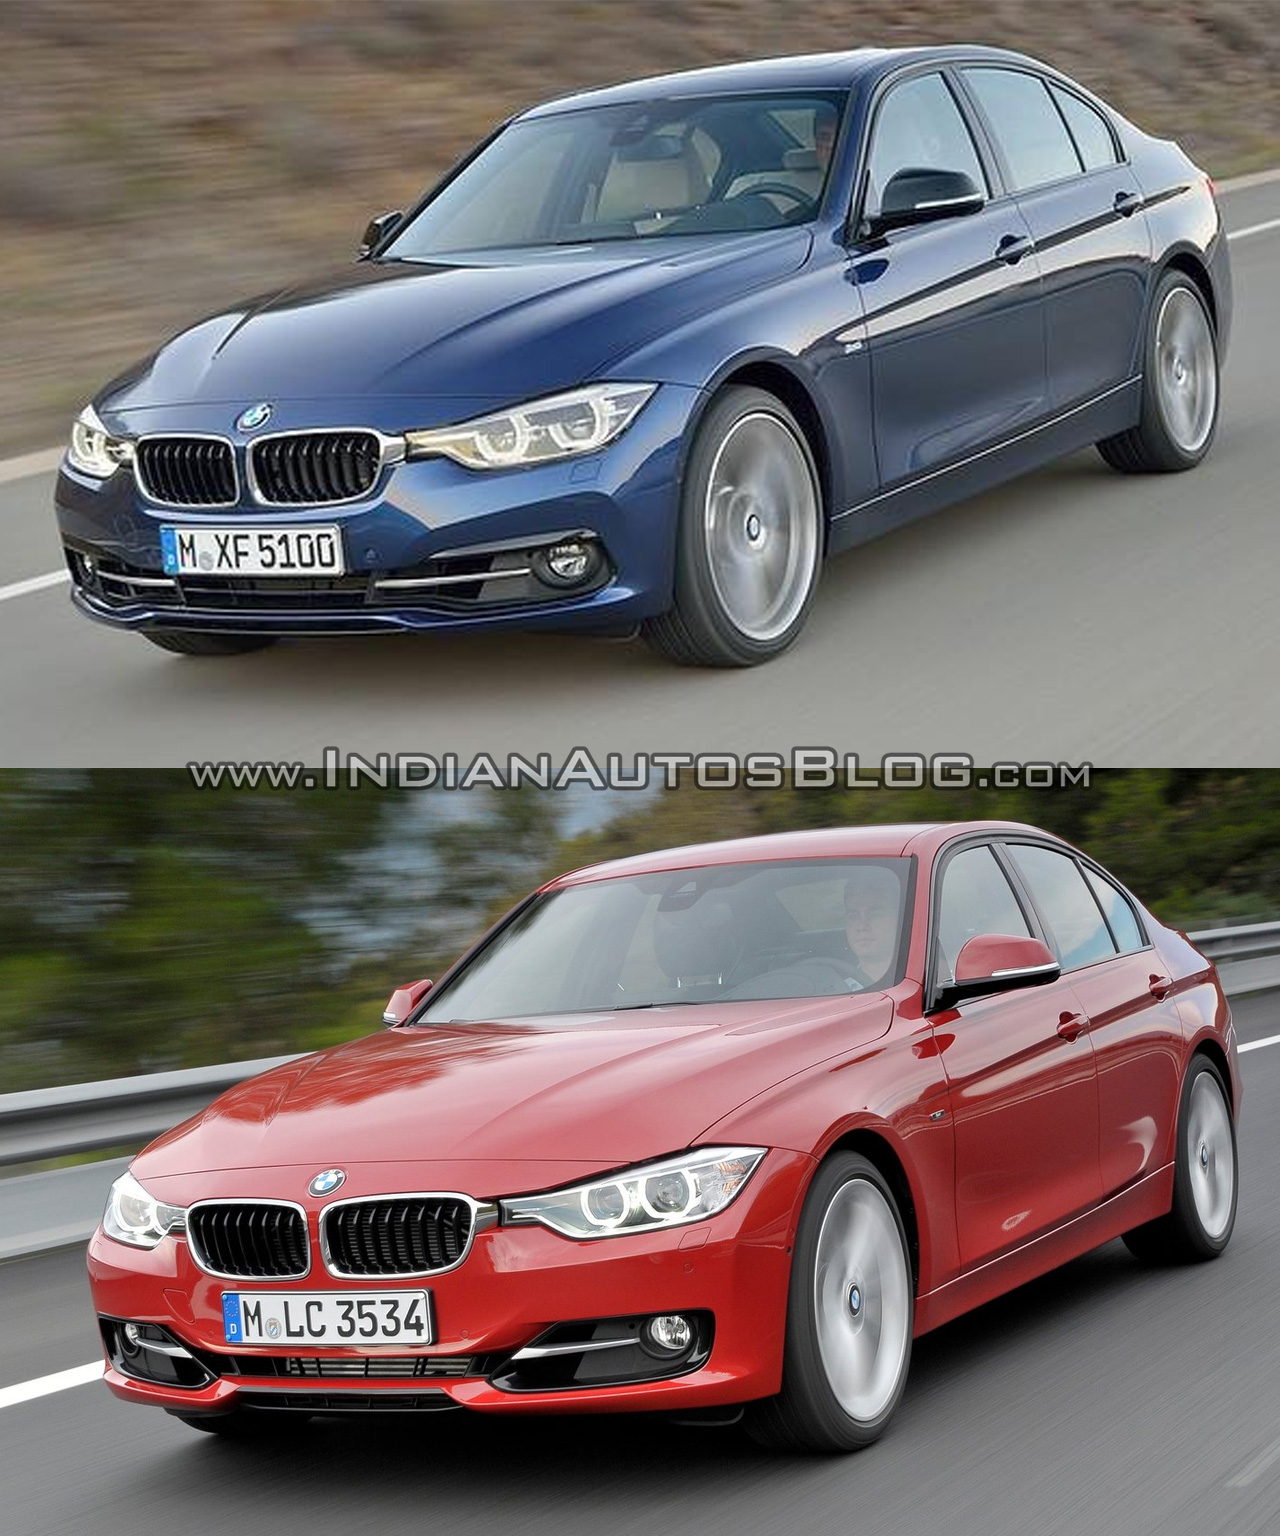 2015 bmw 3 series facelift vs older model old vs new. Black Bedroom Furniture Sets. Home Design Ideas